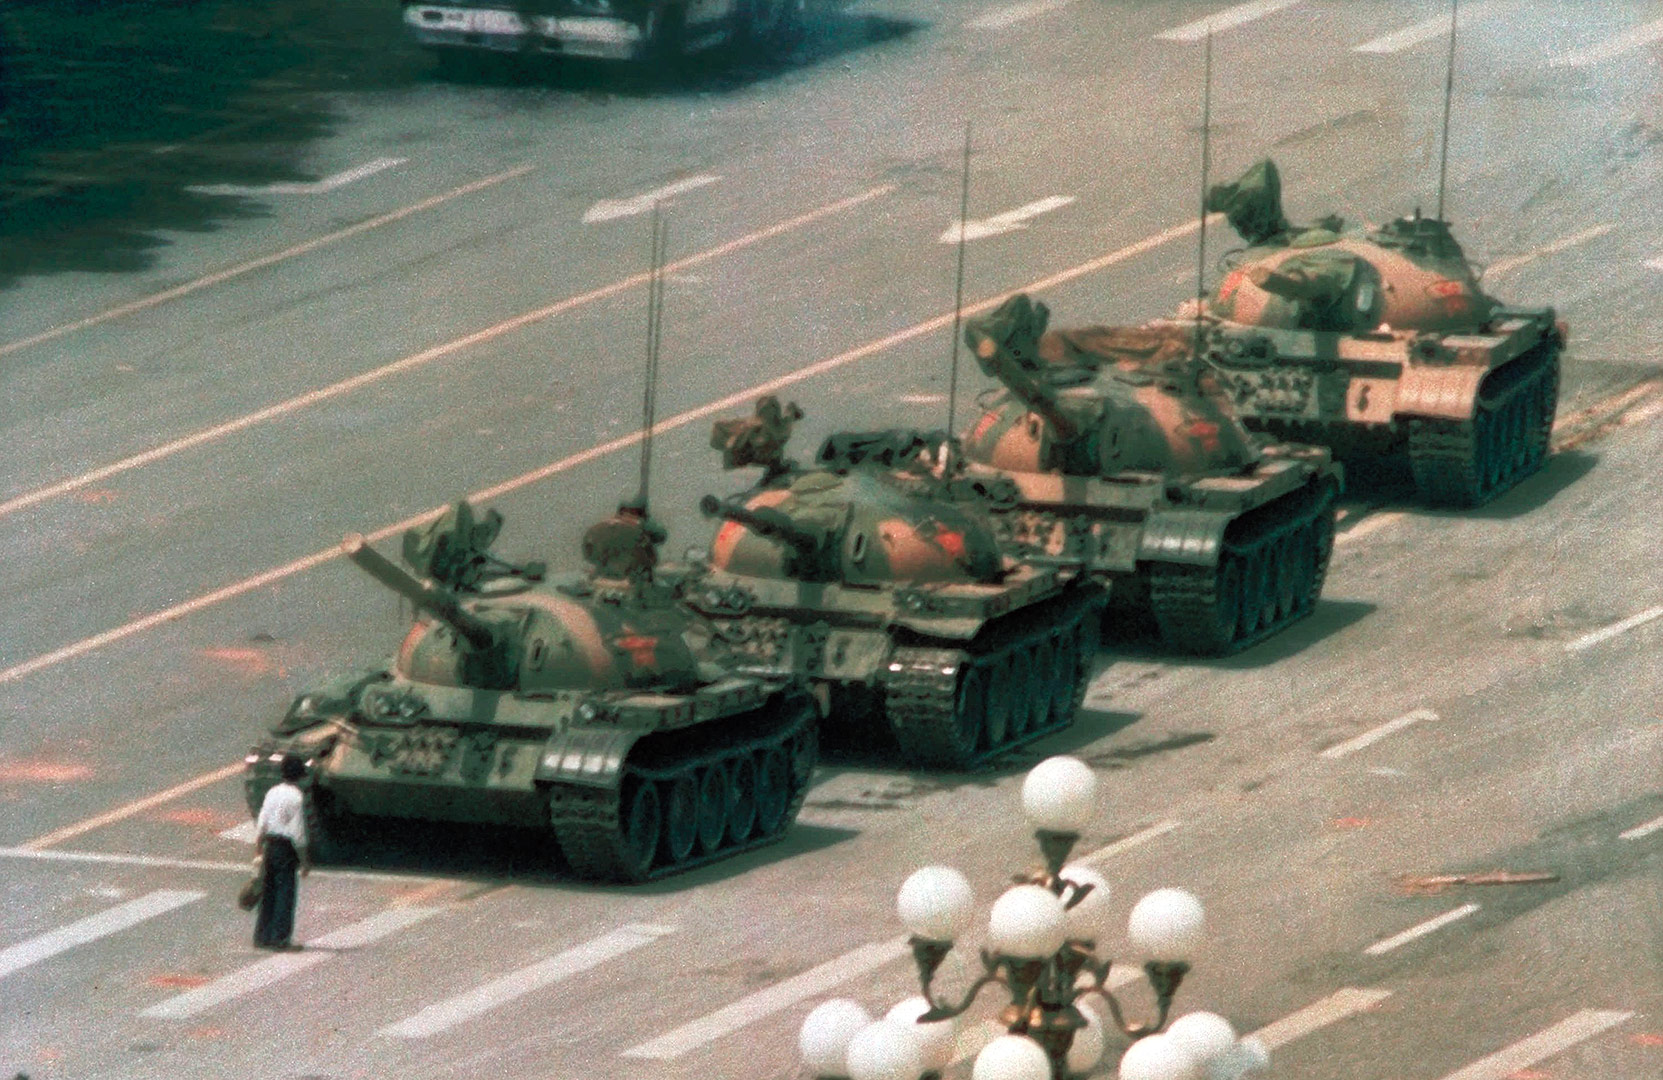 The famed photograph taken in 1989 by Jeff Widener at the height of the Tiananmen Square Protests, photo from TIME